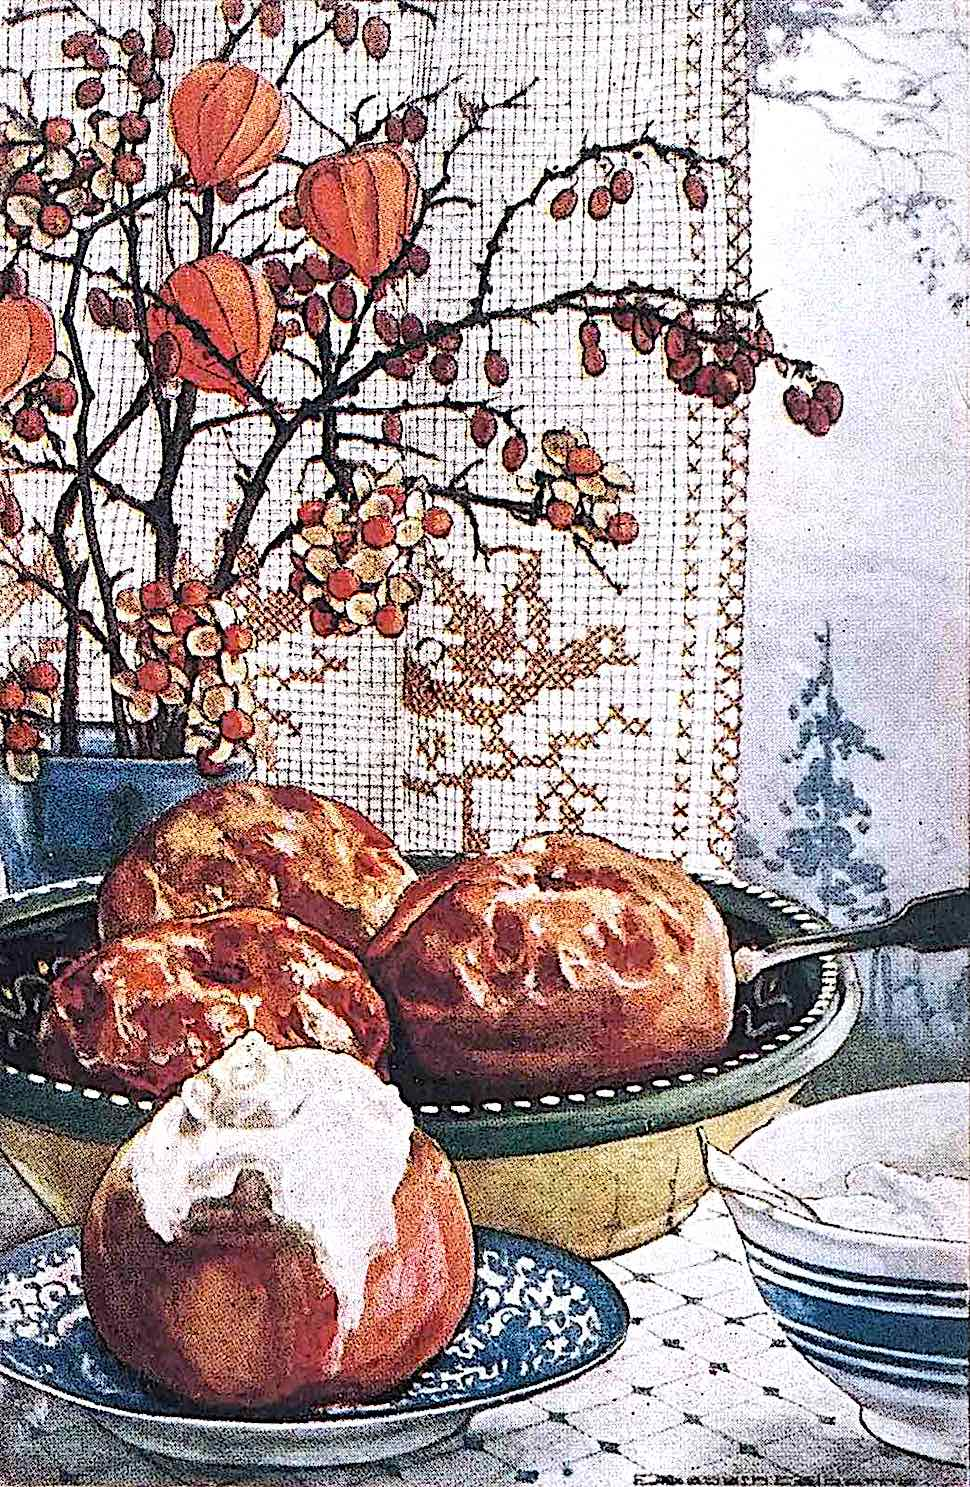 1923 baked apples with syrup, a color illustration